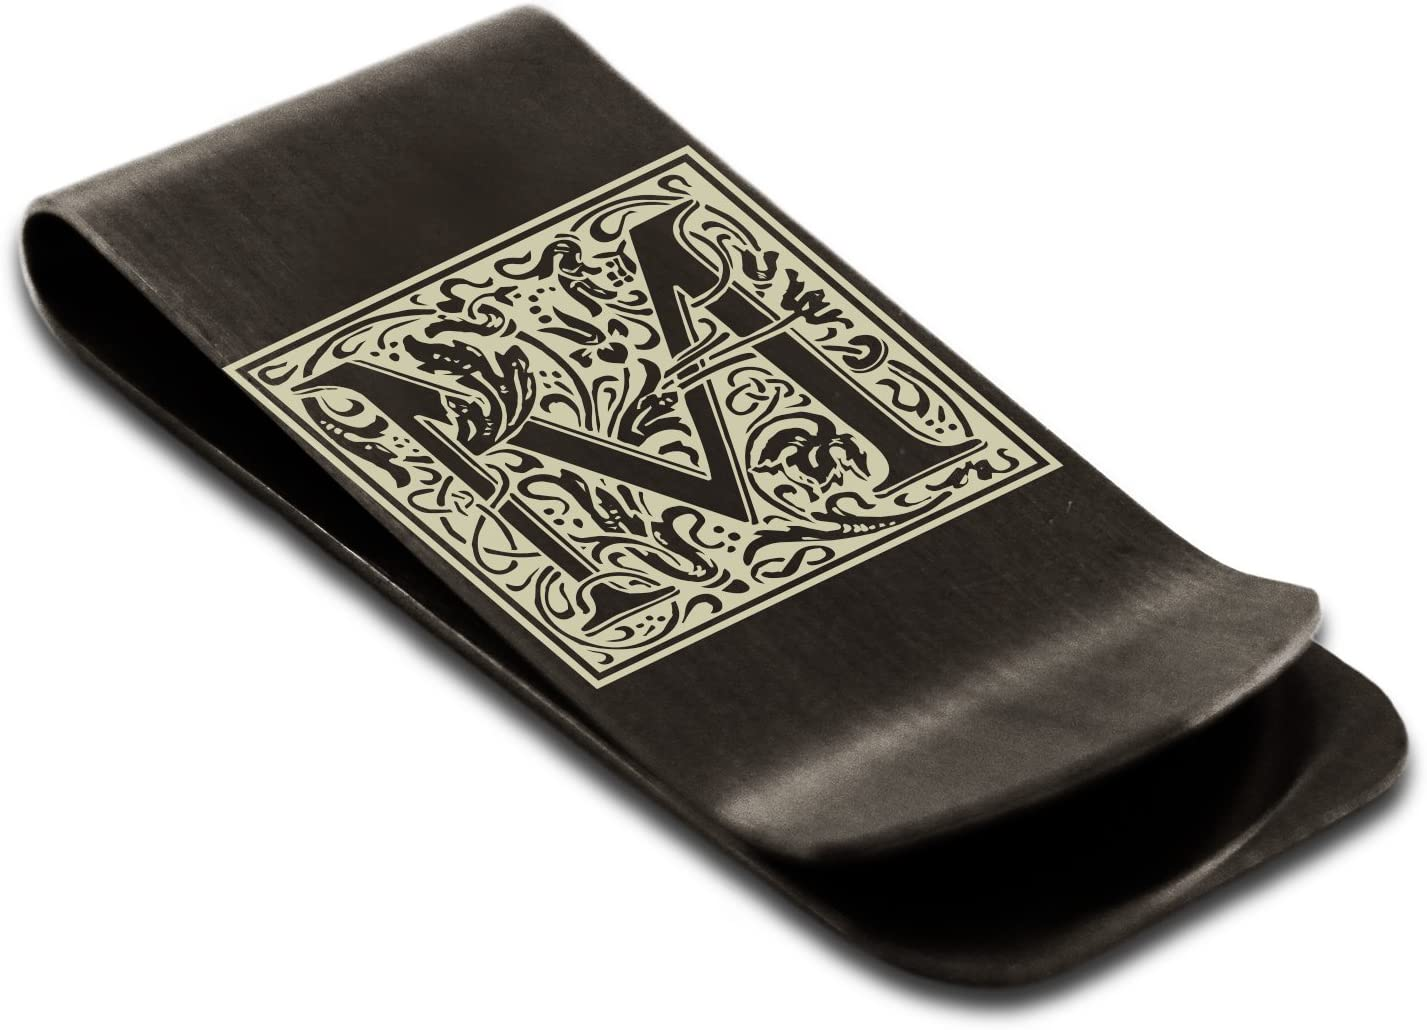 Tioneer Stainless Steel Money Clip Credit Card Holder | Initial Floral Box Monogram | Personalize with Free Engraving (Black, M)